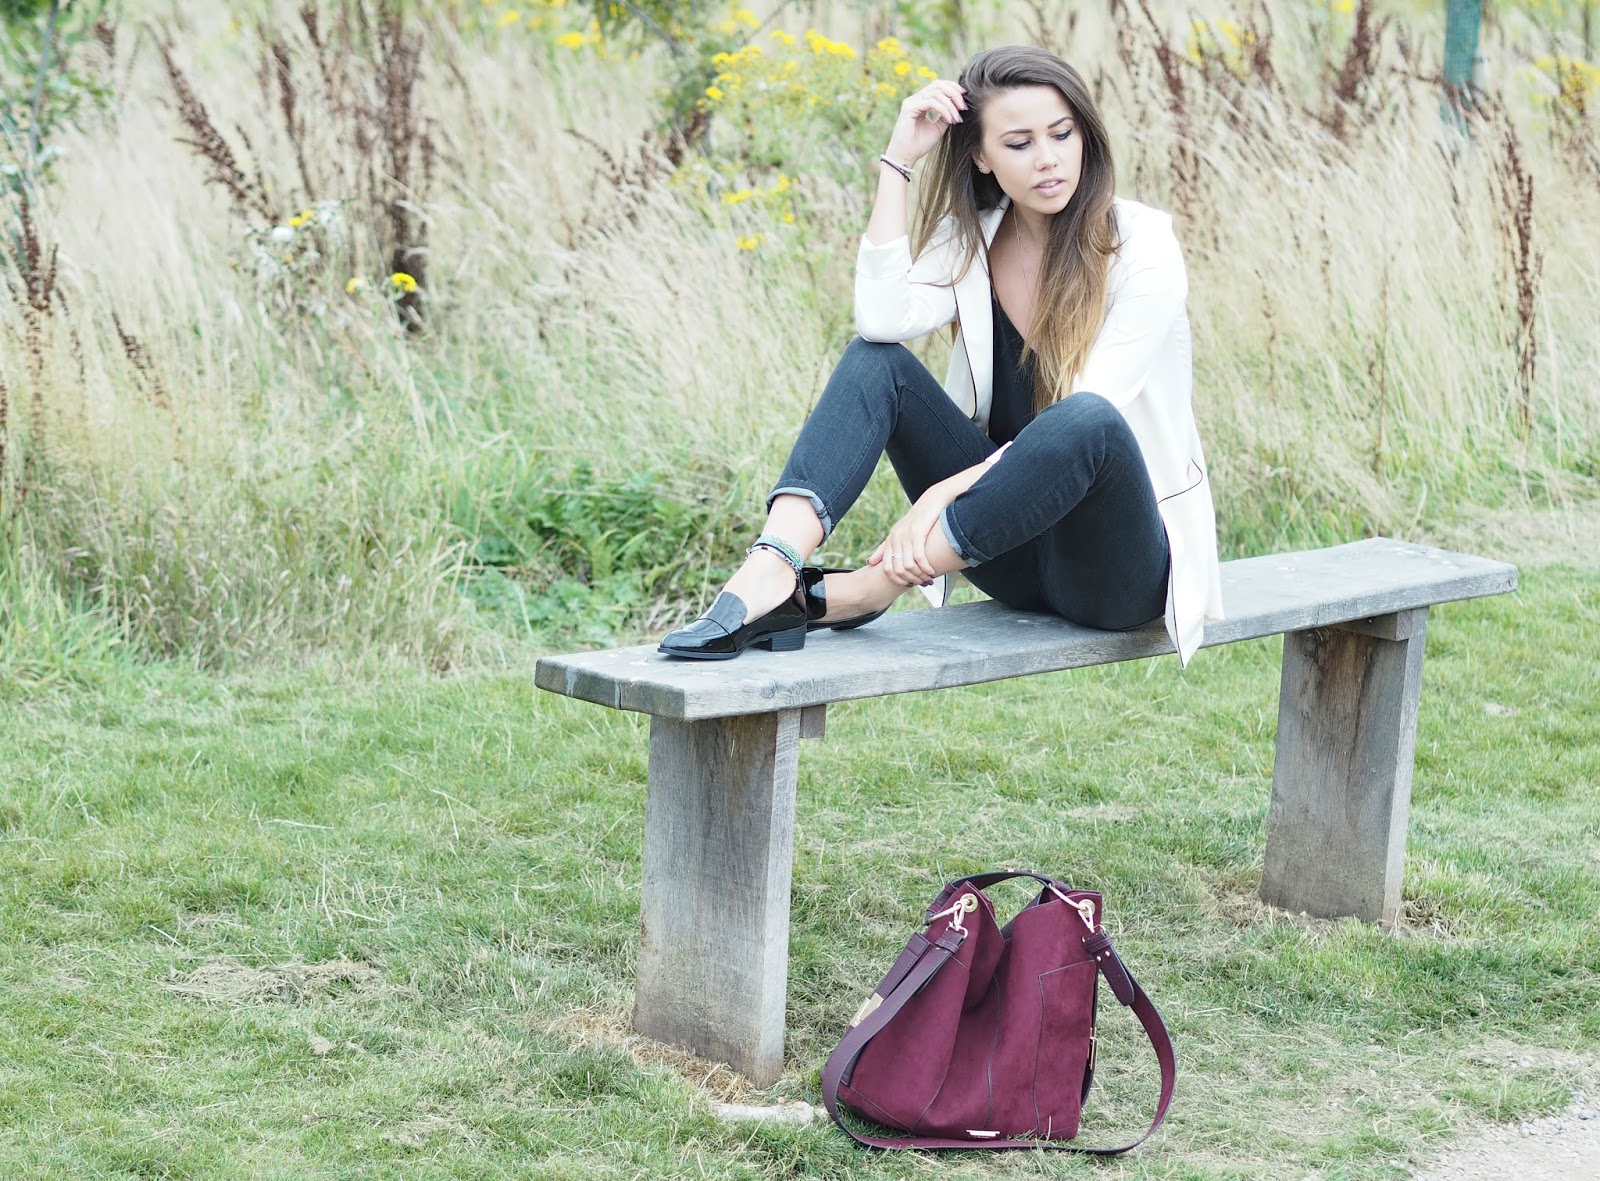 river island collaboration with a blogger